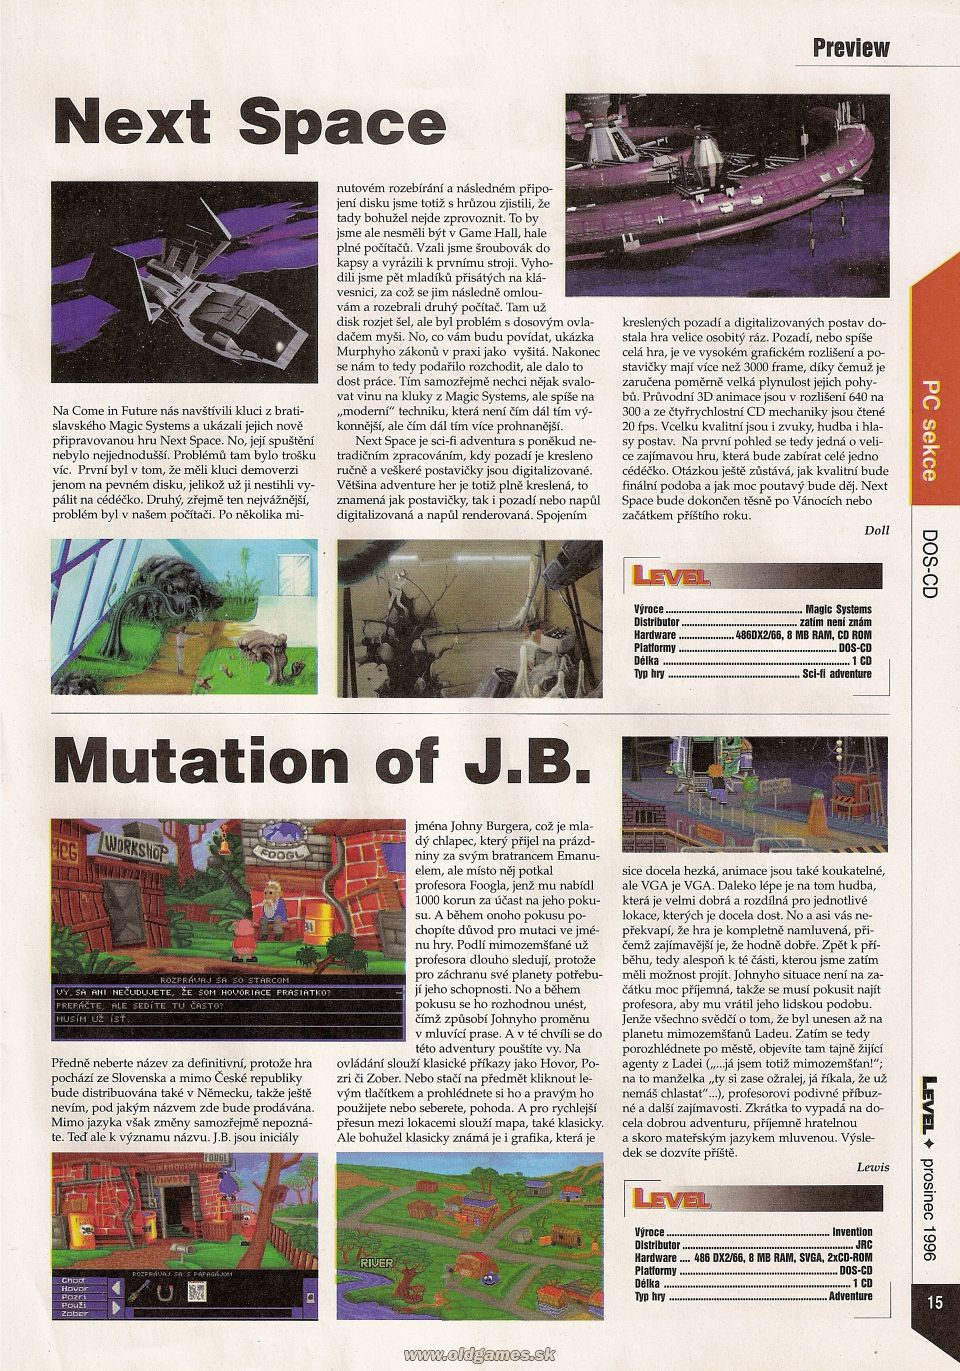 Preview: Next Space, Mutation of J.B.